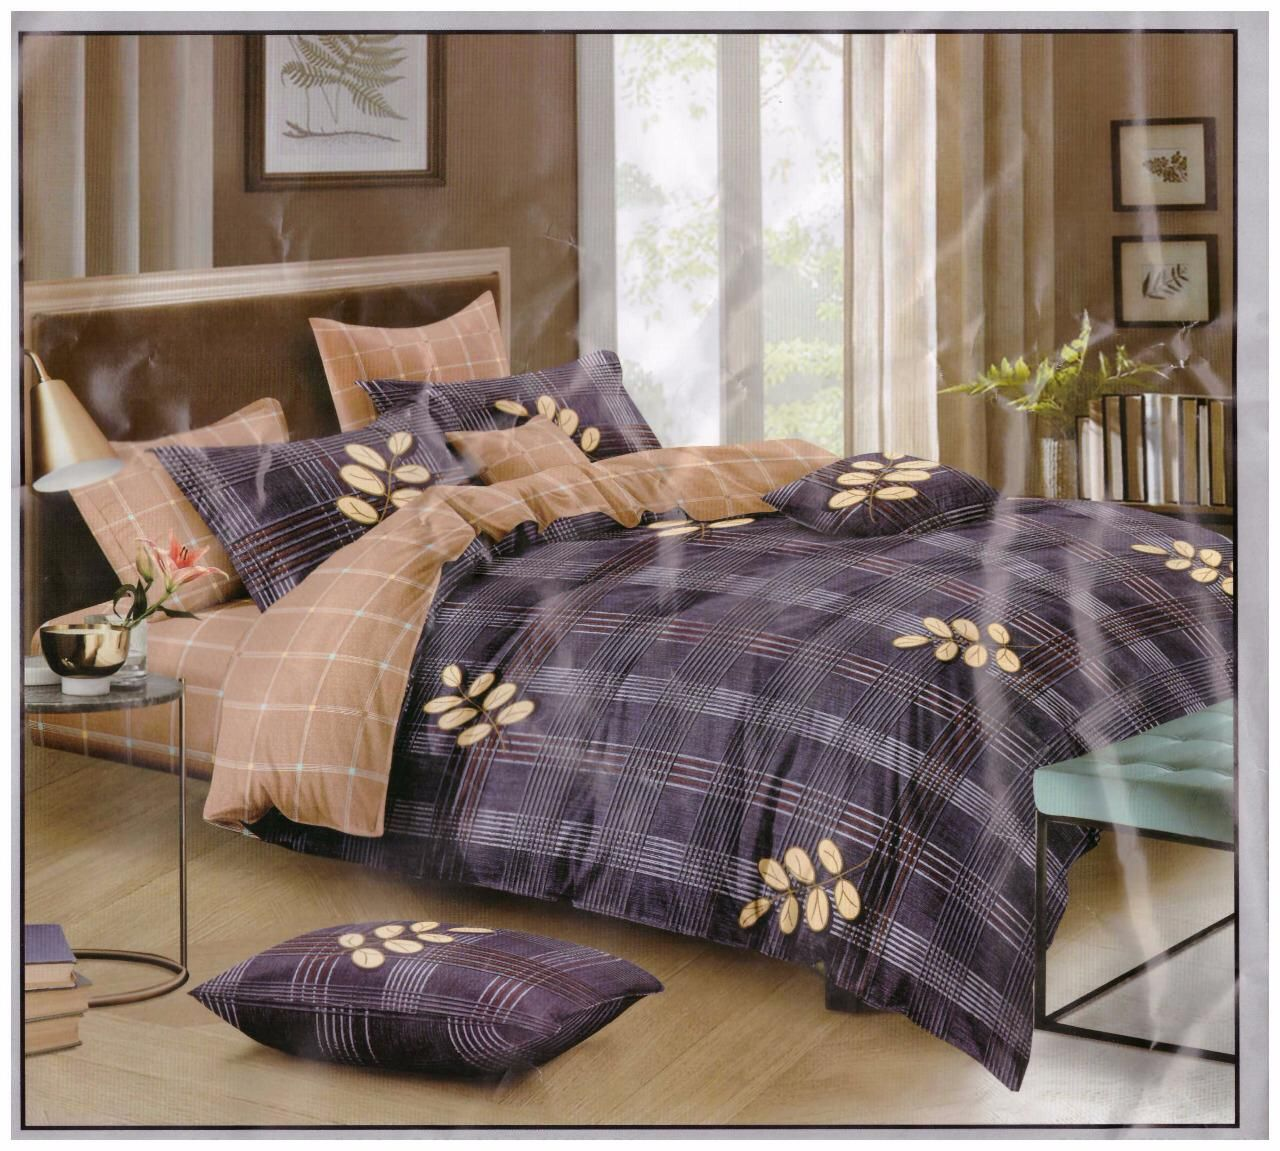 Wholesale Bedding Manufacturers Wholesalers In 2020 Wholesale